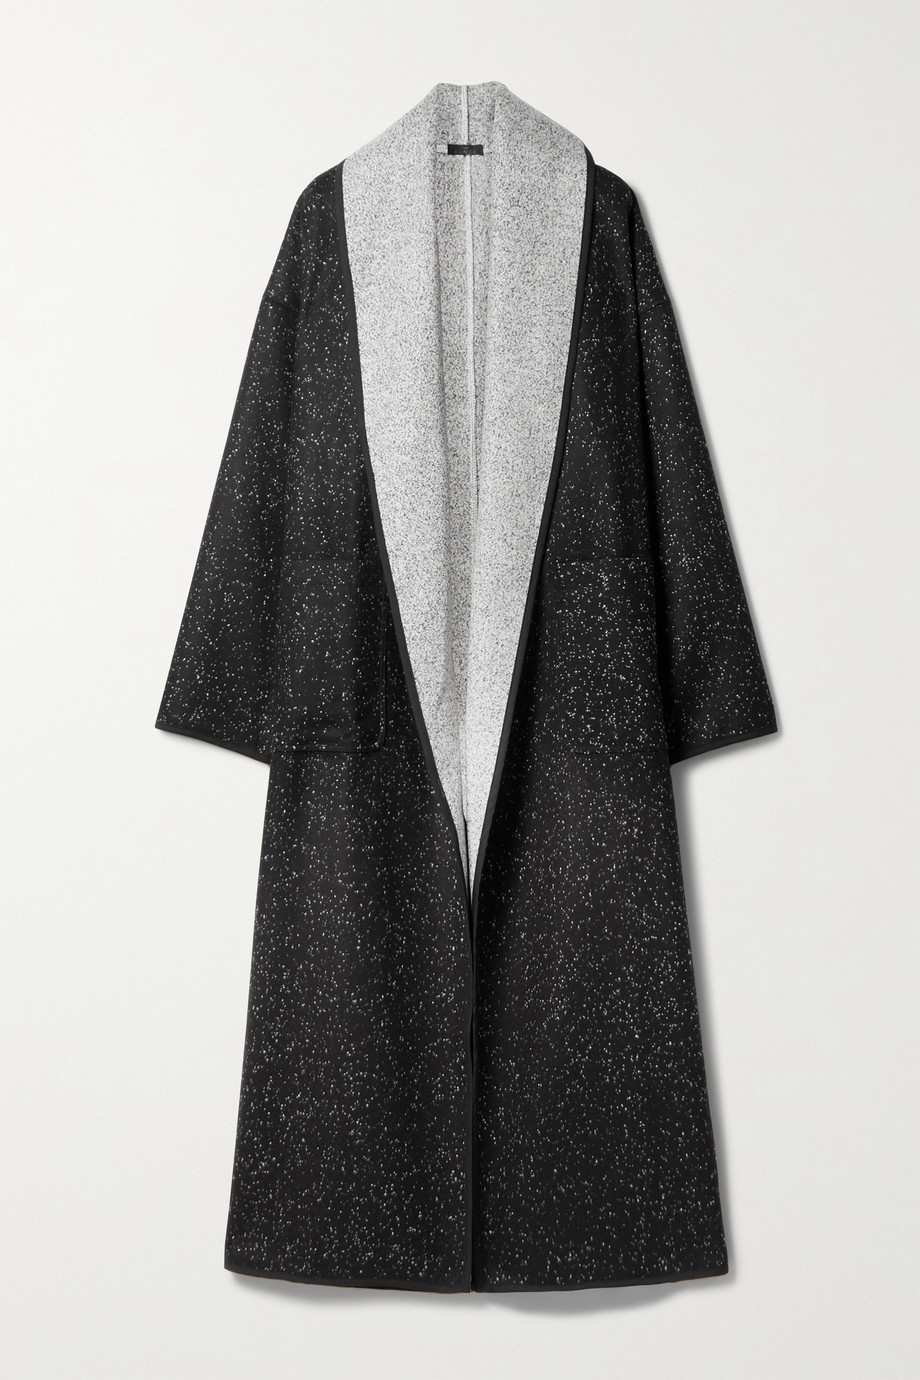 The Range Static reversible flannel coat